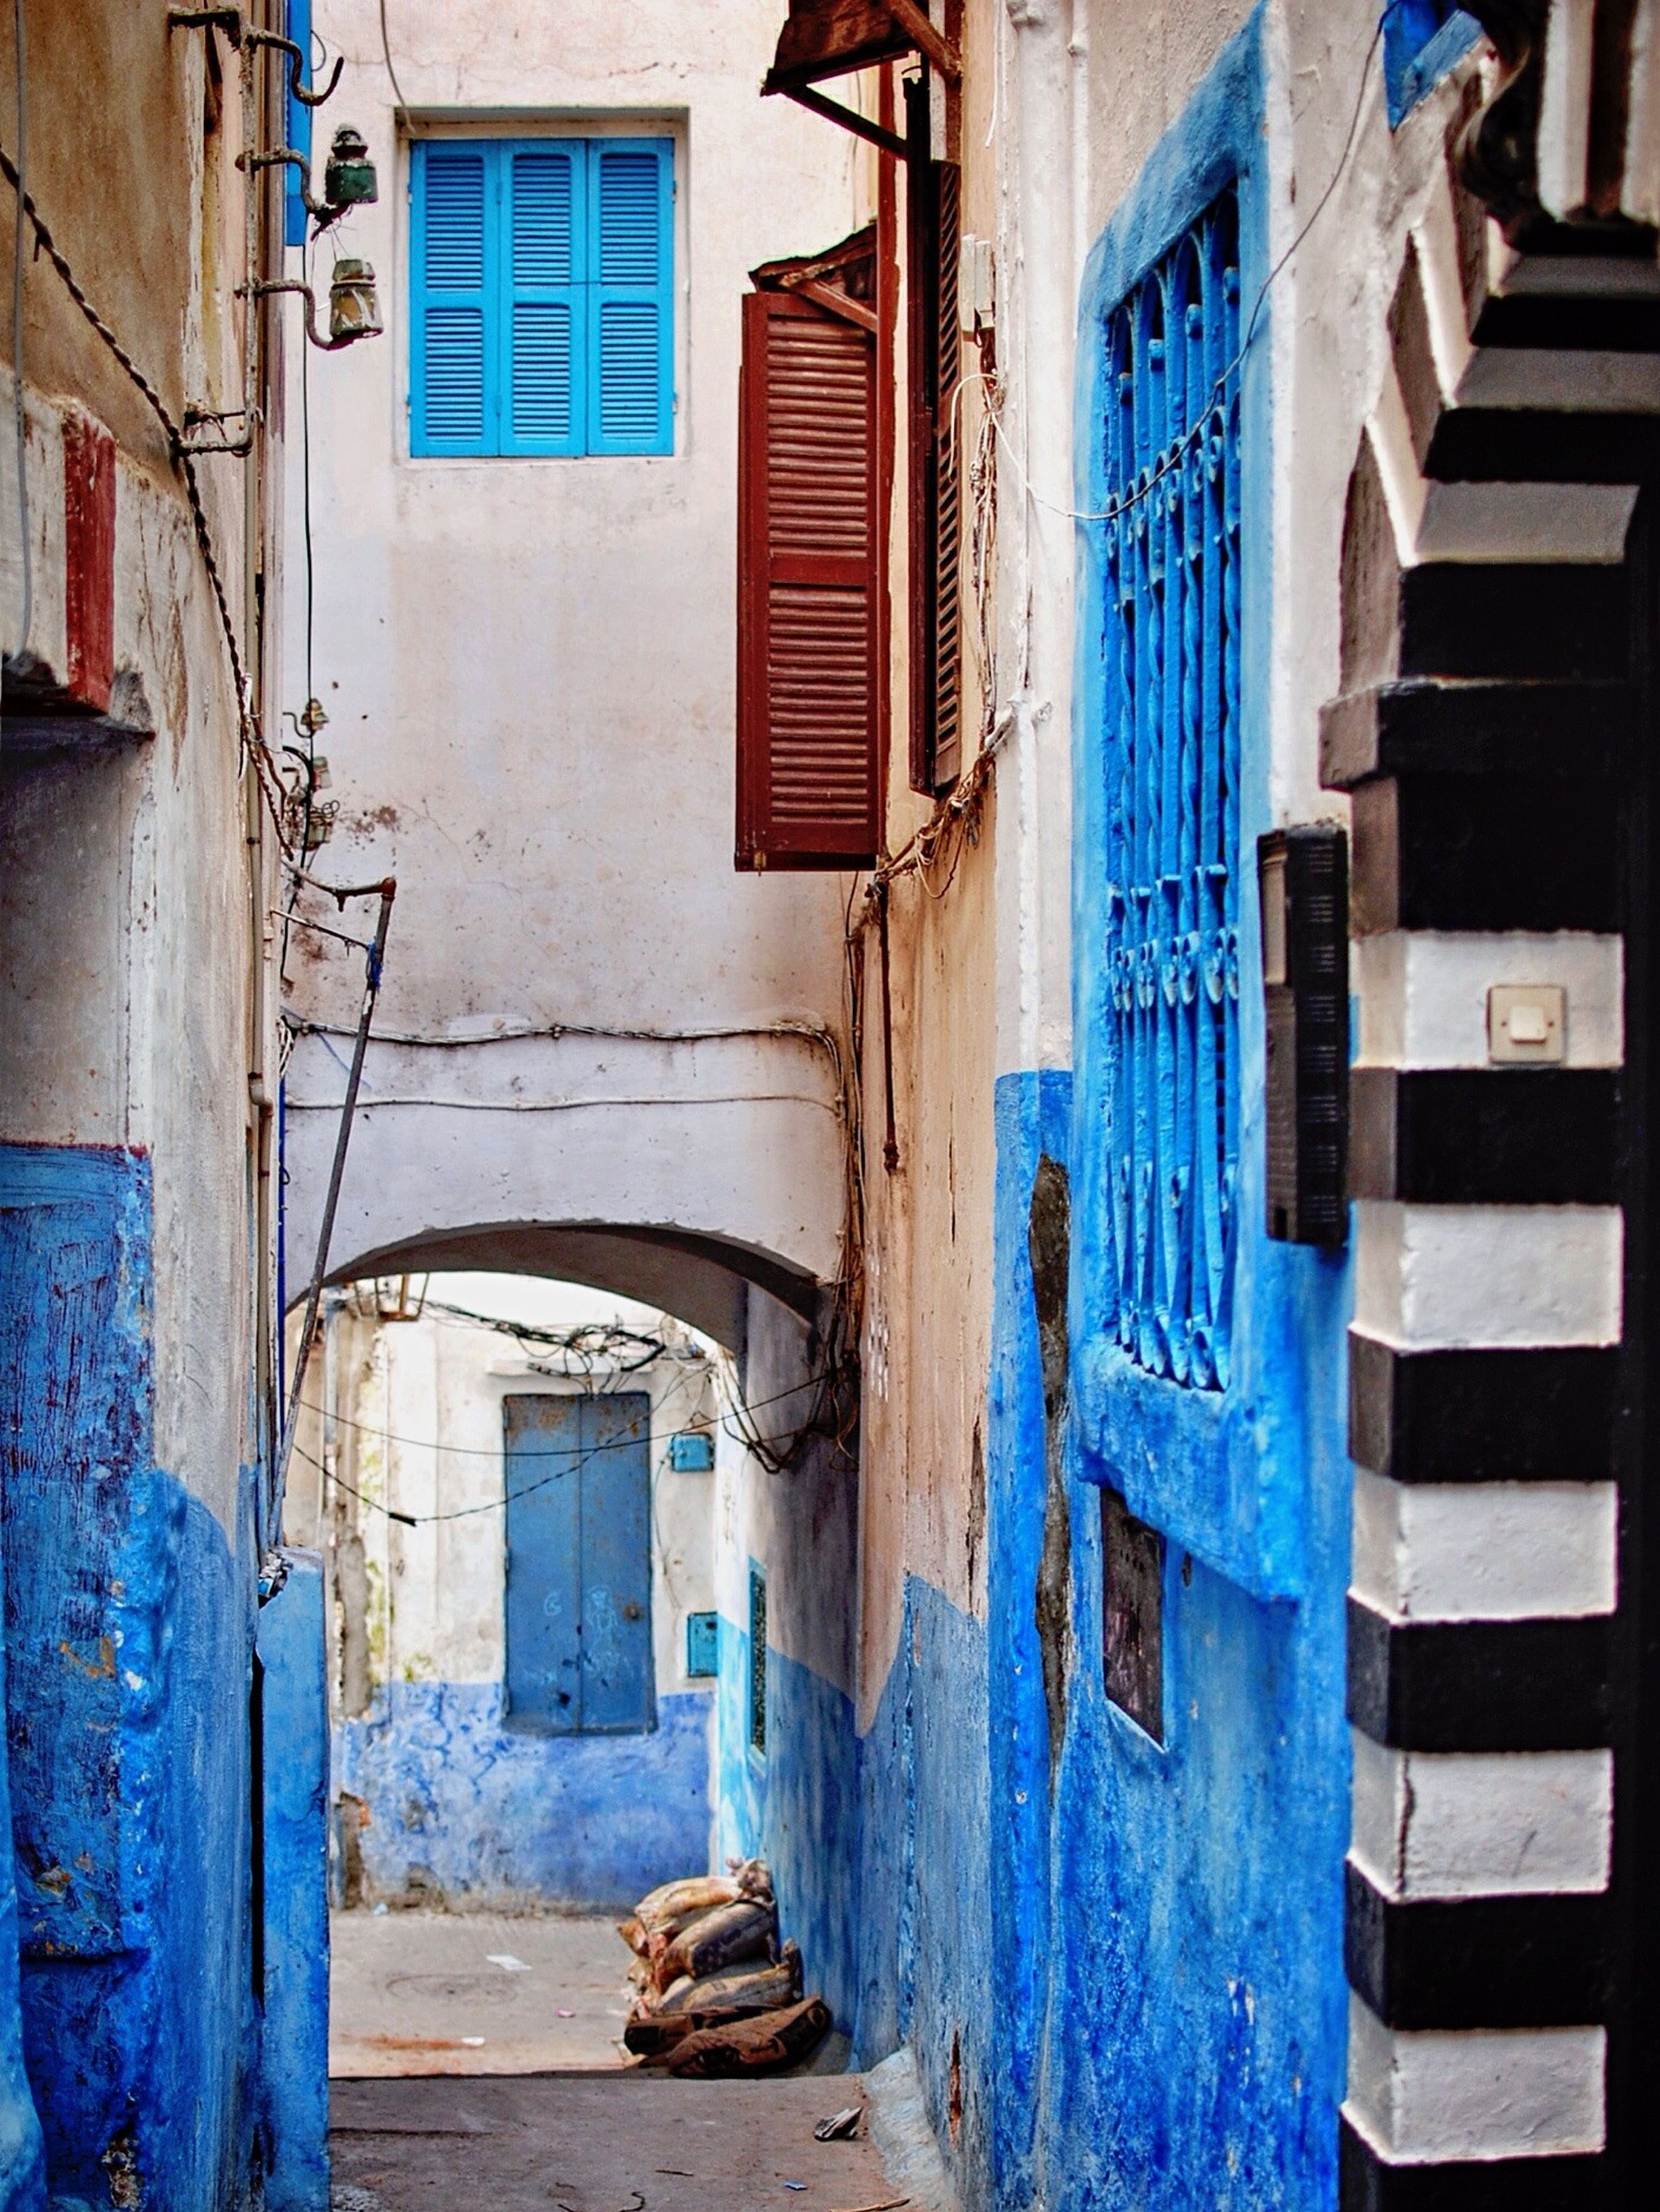 architecture, building exterior, built structure, residential building, residential structure, house, blue, building, window, narrow, wall, street, day, town, wall - building feature, outdoors, no people, city, alley, sunlight